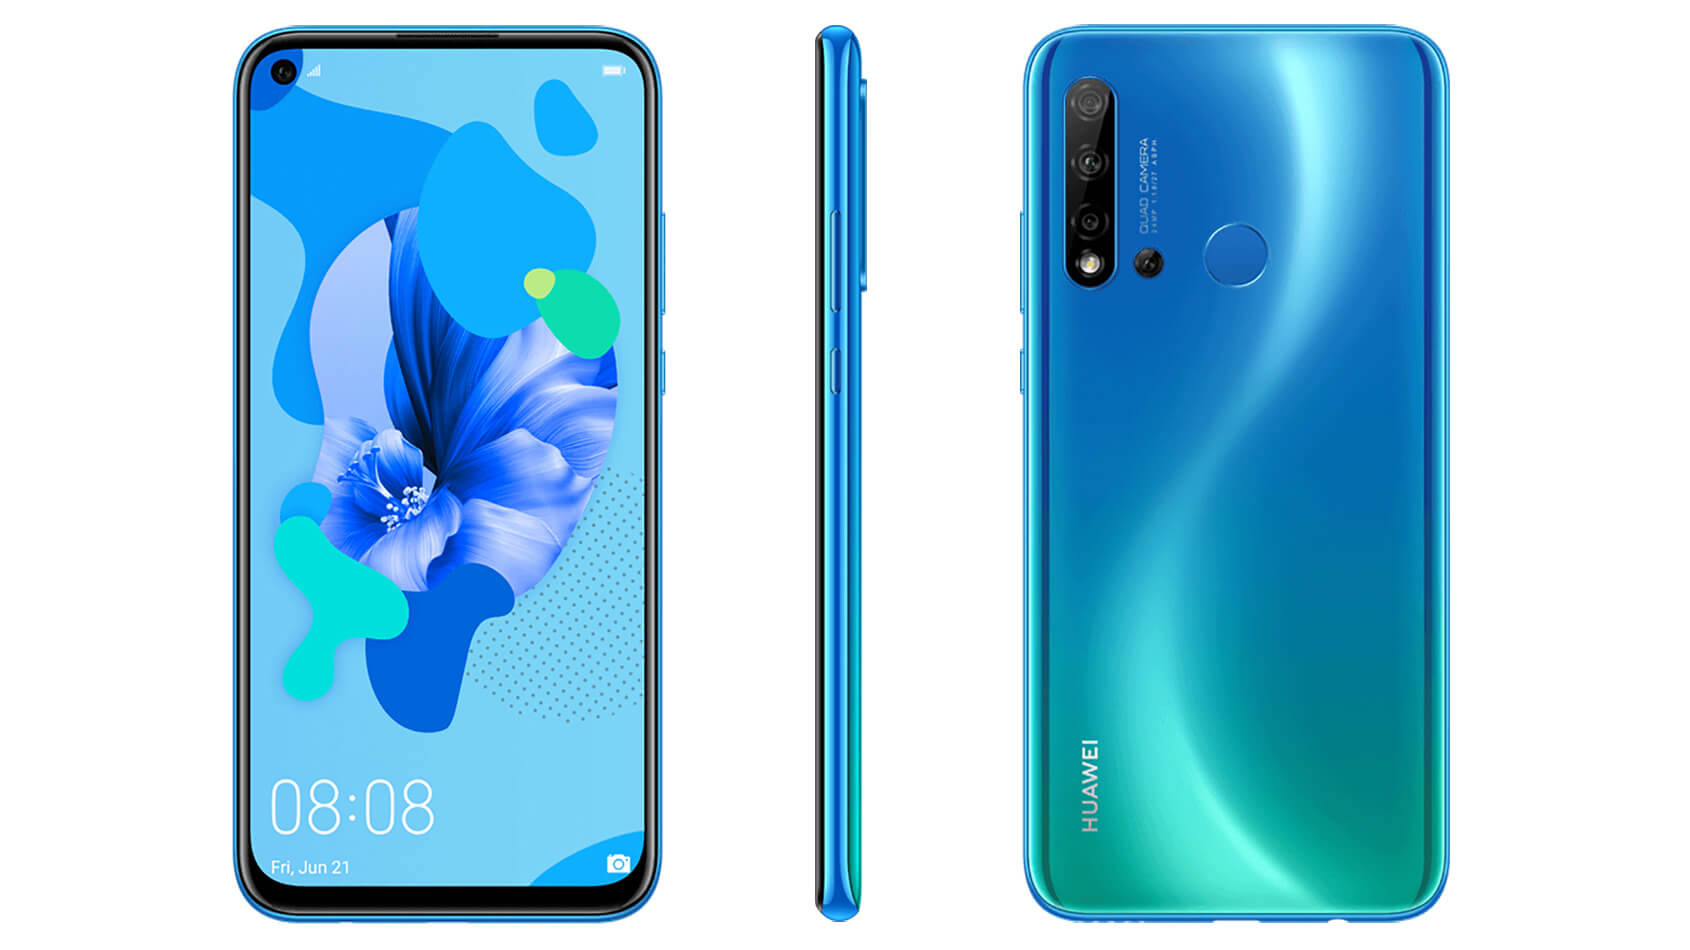 Huawei P20 Lite 2019 is coming with quad rear camera and